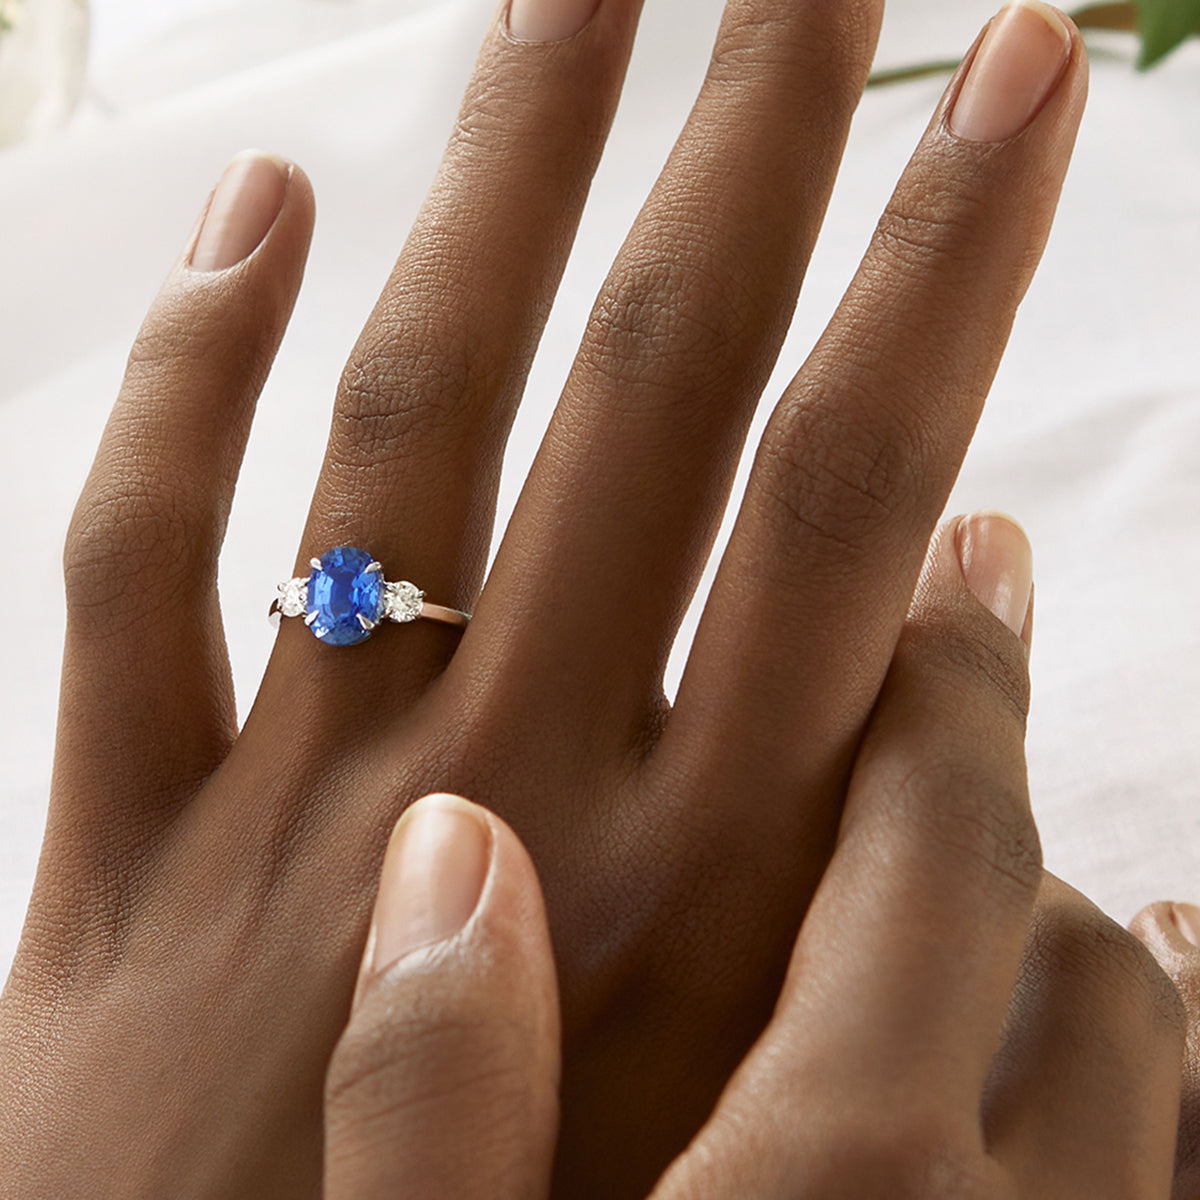 Clean Oval Cut Blue Sapphire Trilogy Ring from Fenton on a hand